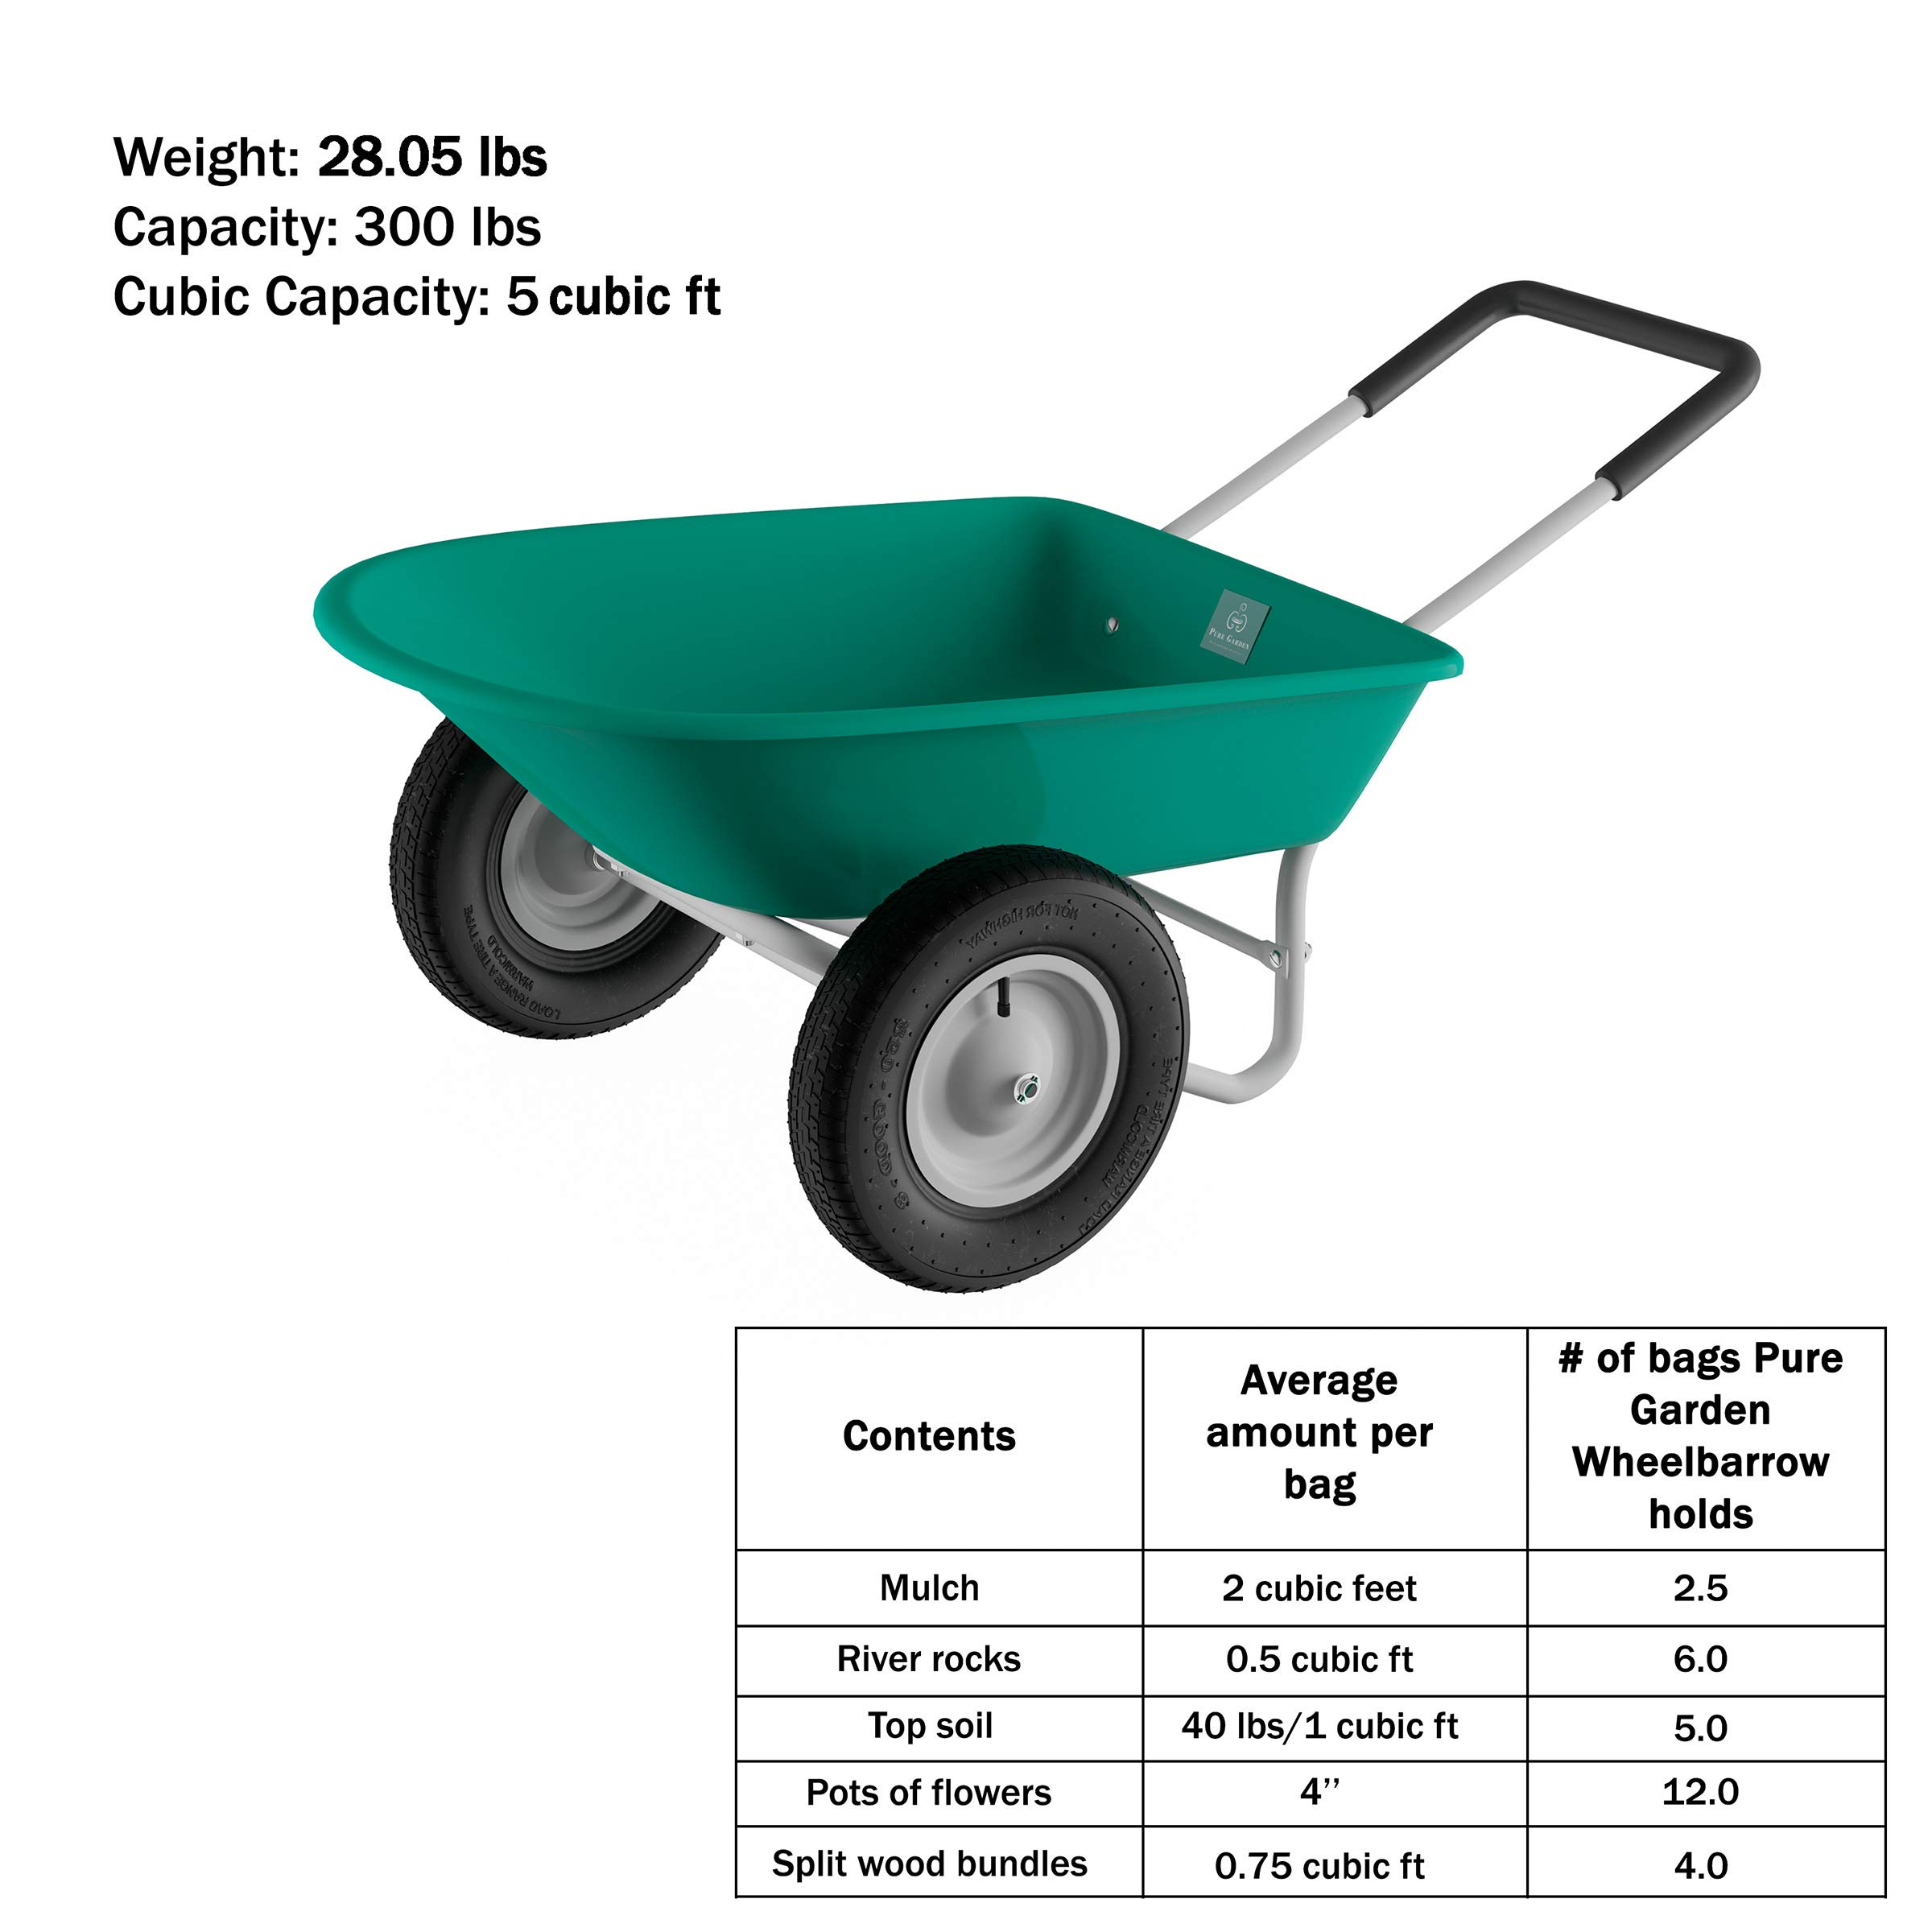 Pure Garden (PURNC) 50-LG1079 Pure 2-Wheeled Garden Wheelbarrow – Large Capacity Rolling Utility Dump Cart for Residential DIY Landscaping, Lawn Care and Remodeling by Pure Garden (PURNC) (Image #3)